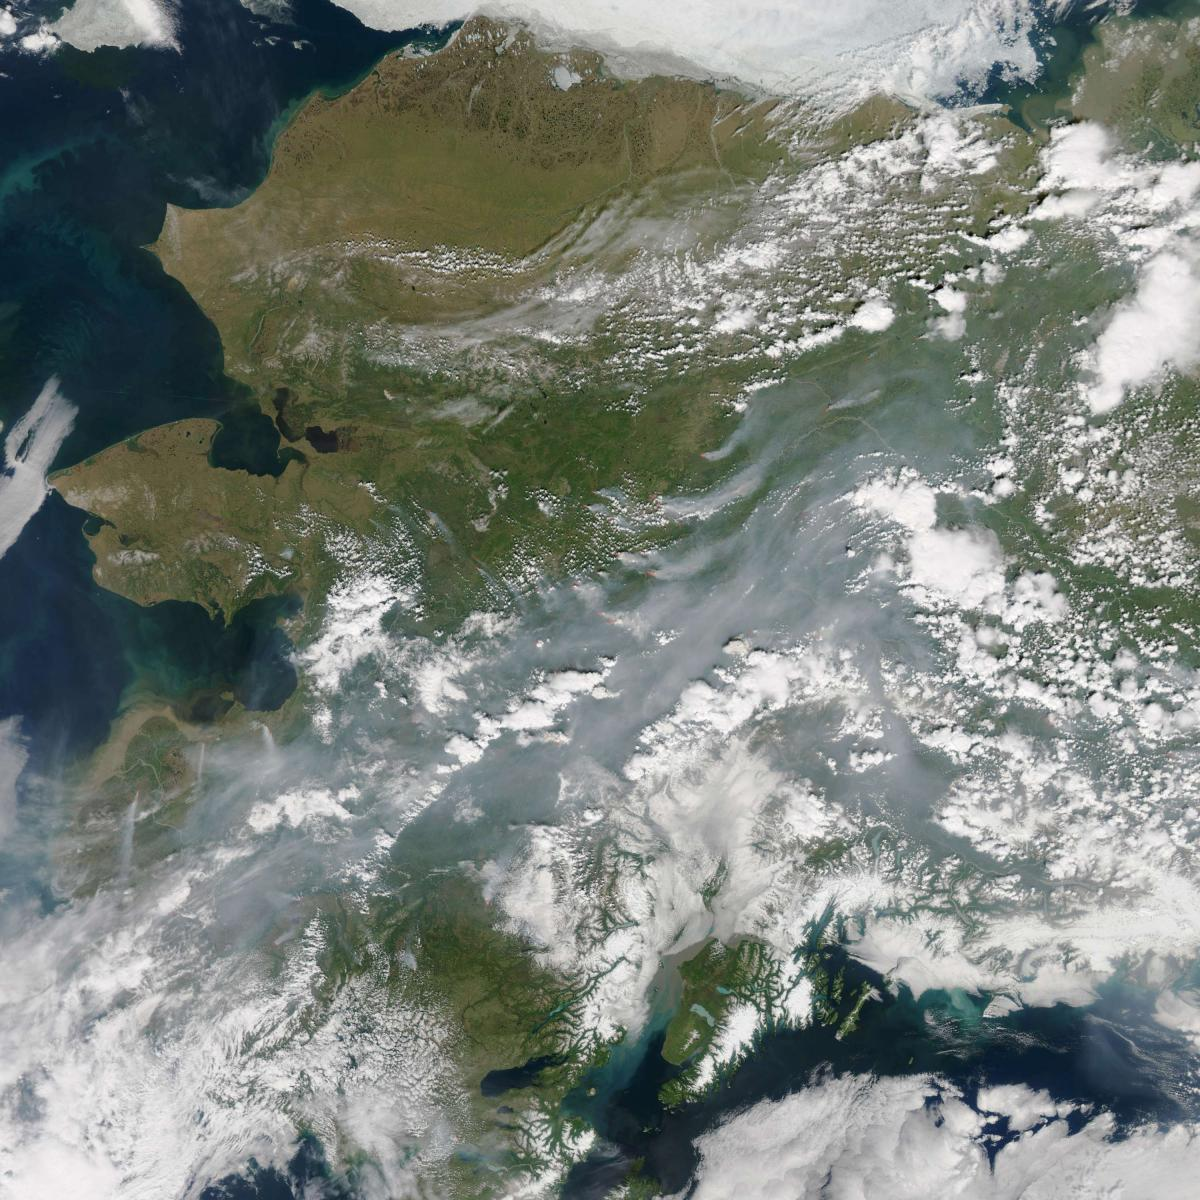 Images taken by NASA satellites last month revealed the extent of wildfires in Alaska's interior. Beyond such wildfires' immediate threats, some scientists are also concerned that they could lead to melting permafrost — and hasten the pace of global cli